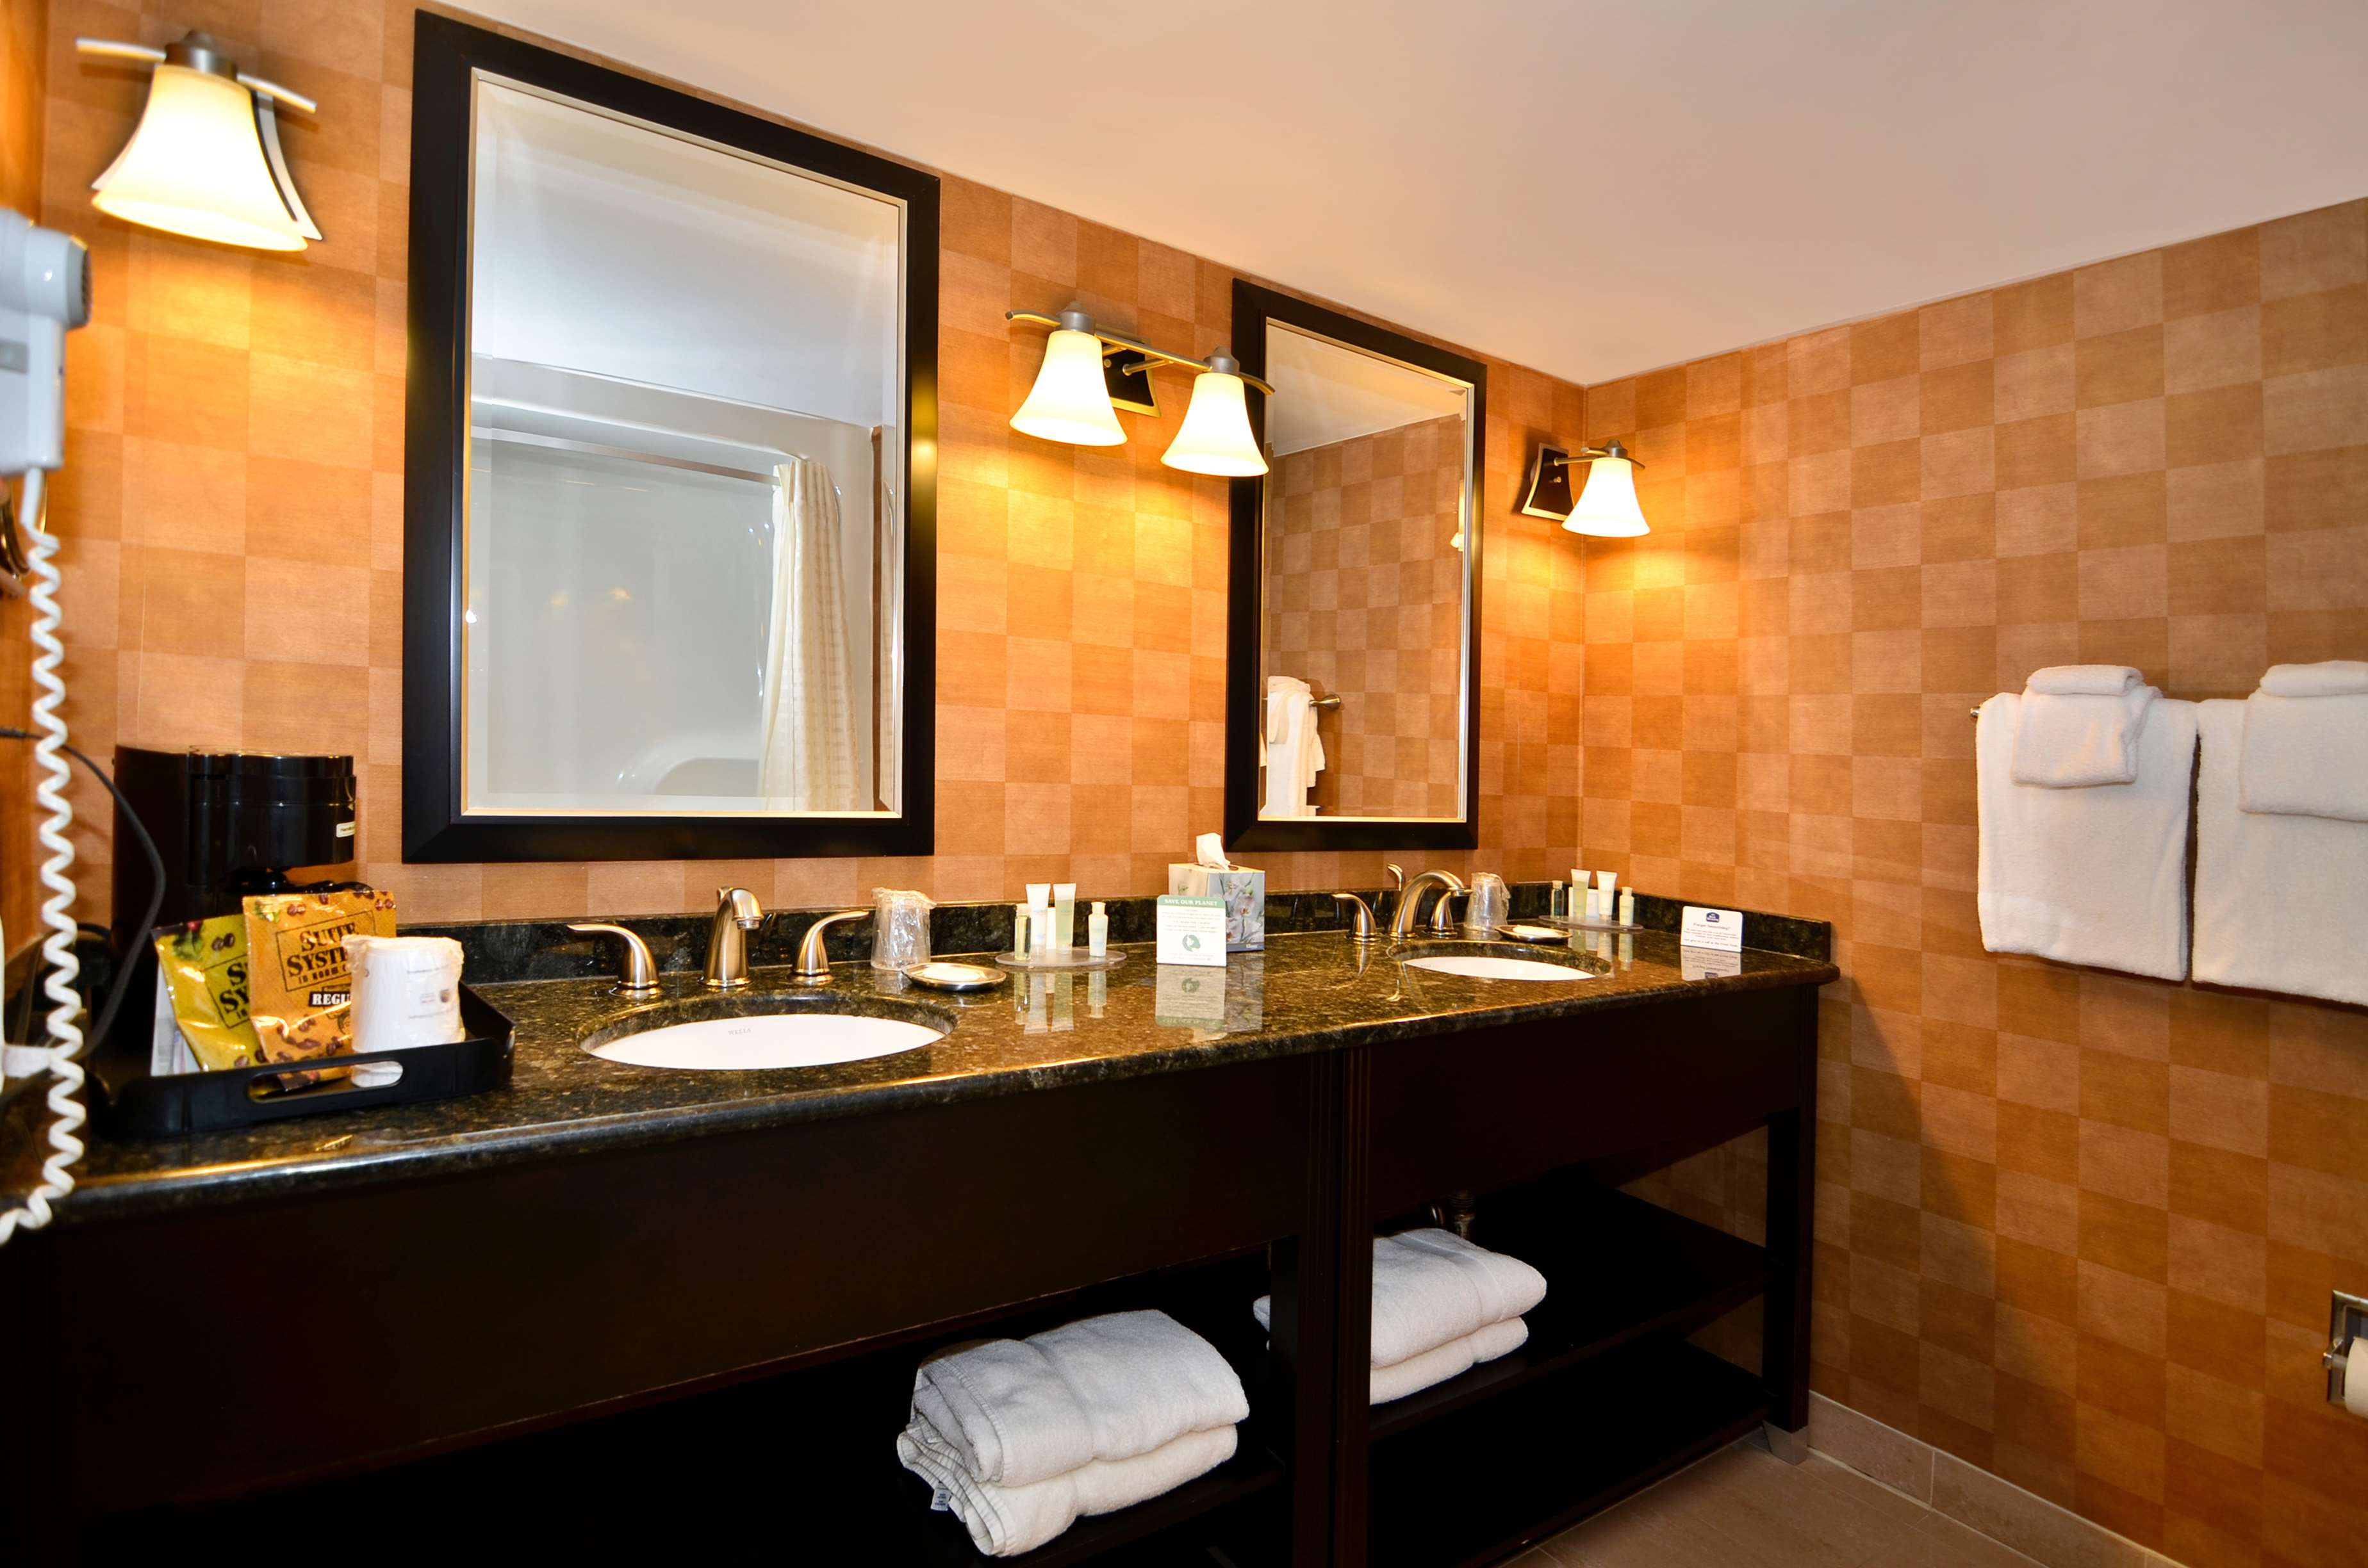 Best western plus bwi airport hotel arundel mills for Best bathrooms on the road